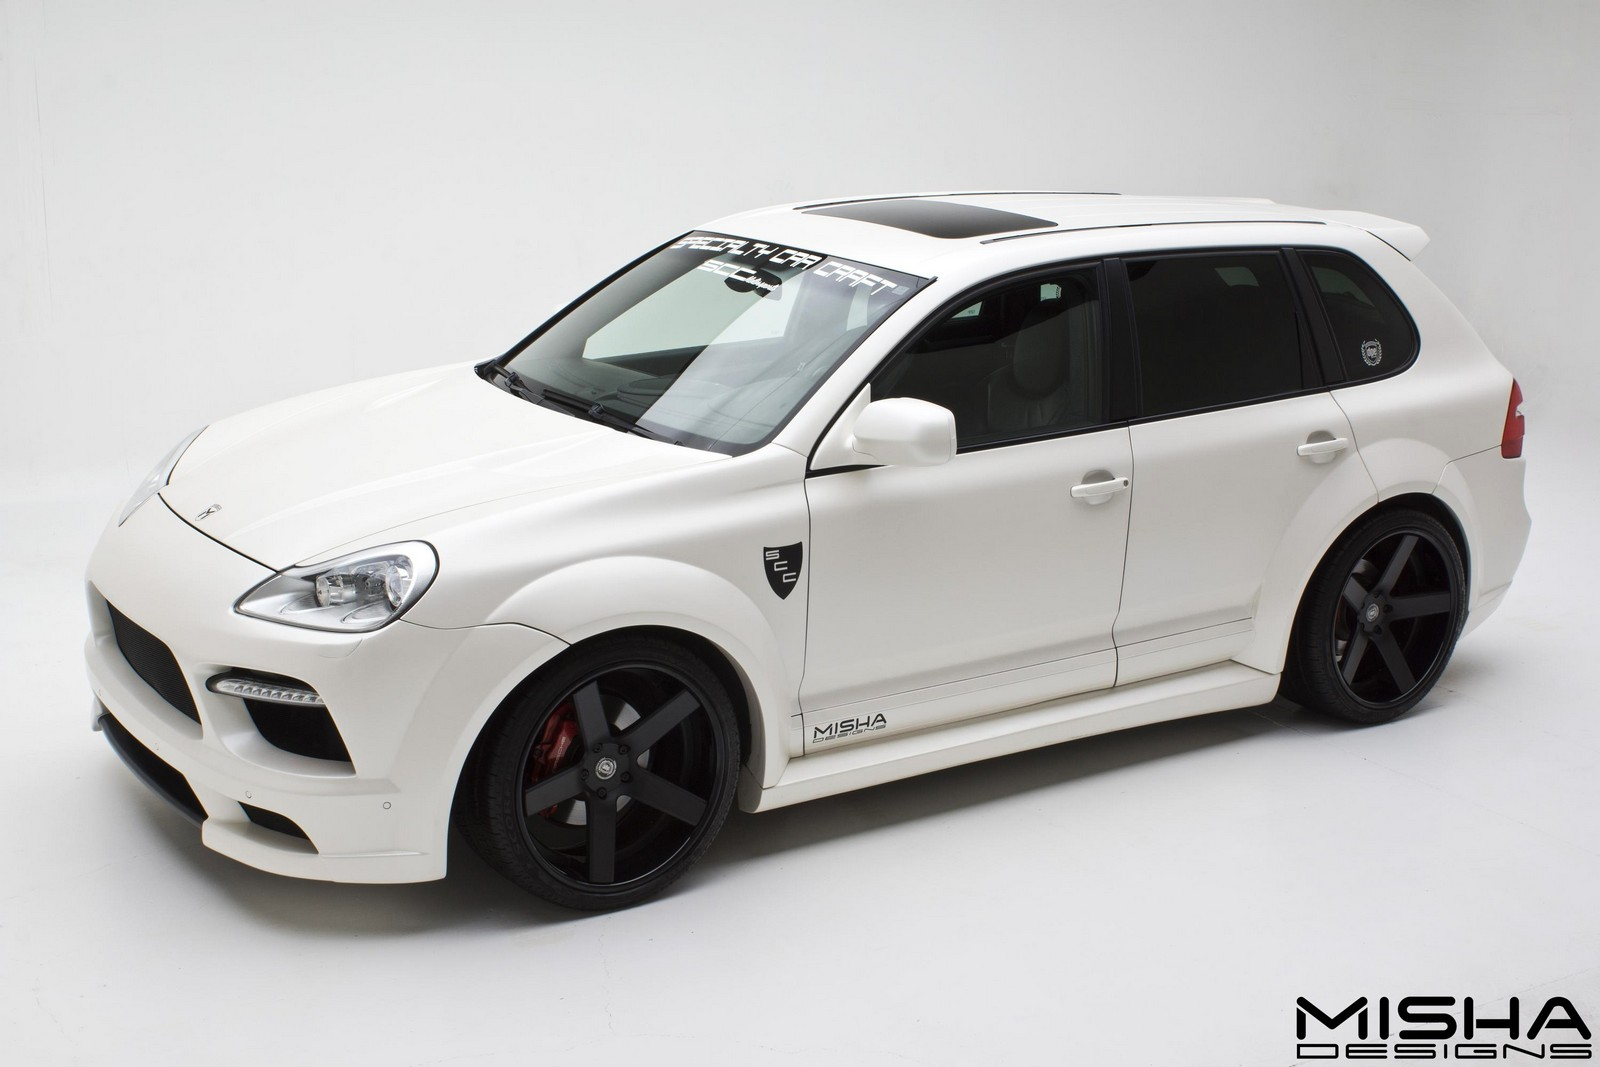 official misha designs porsche cayenne wide body kit. Black Bedroom Furniture Sets. Home Design Ideas